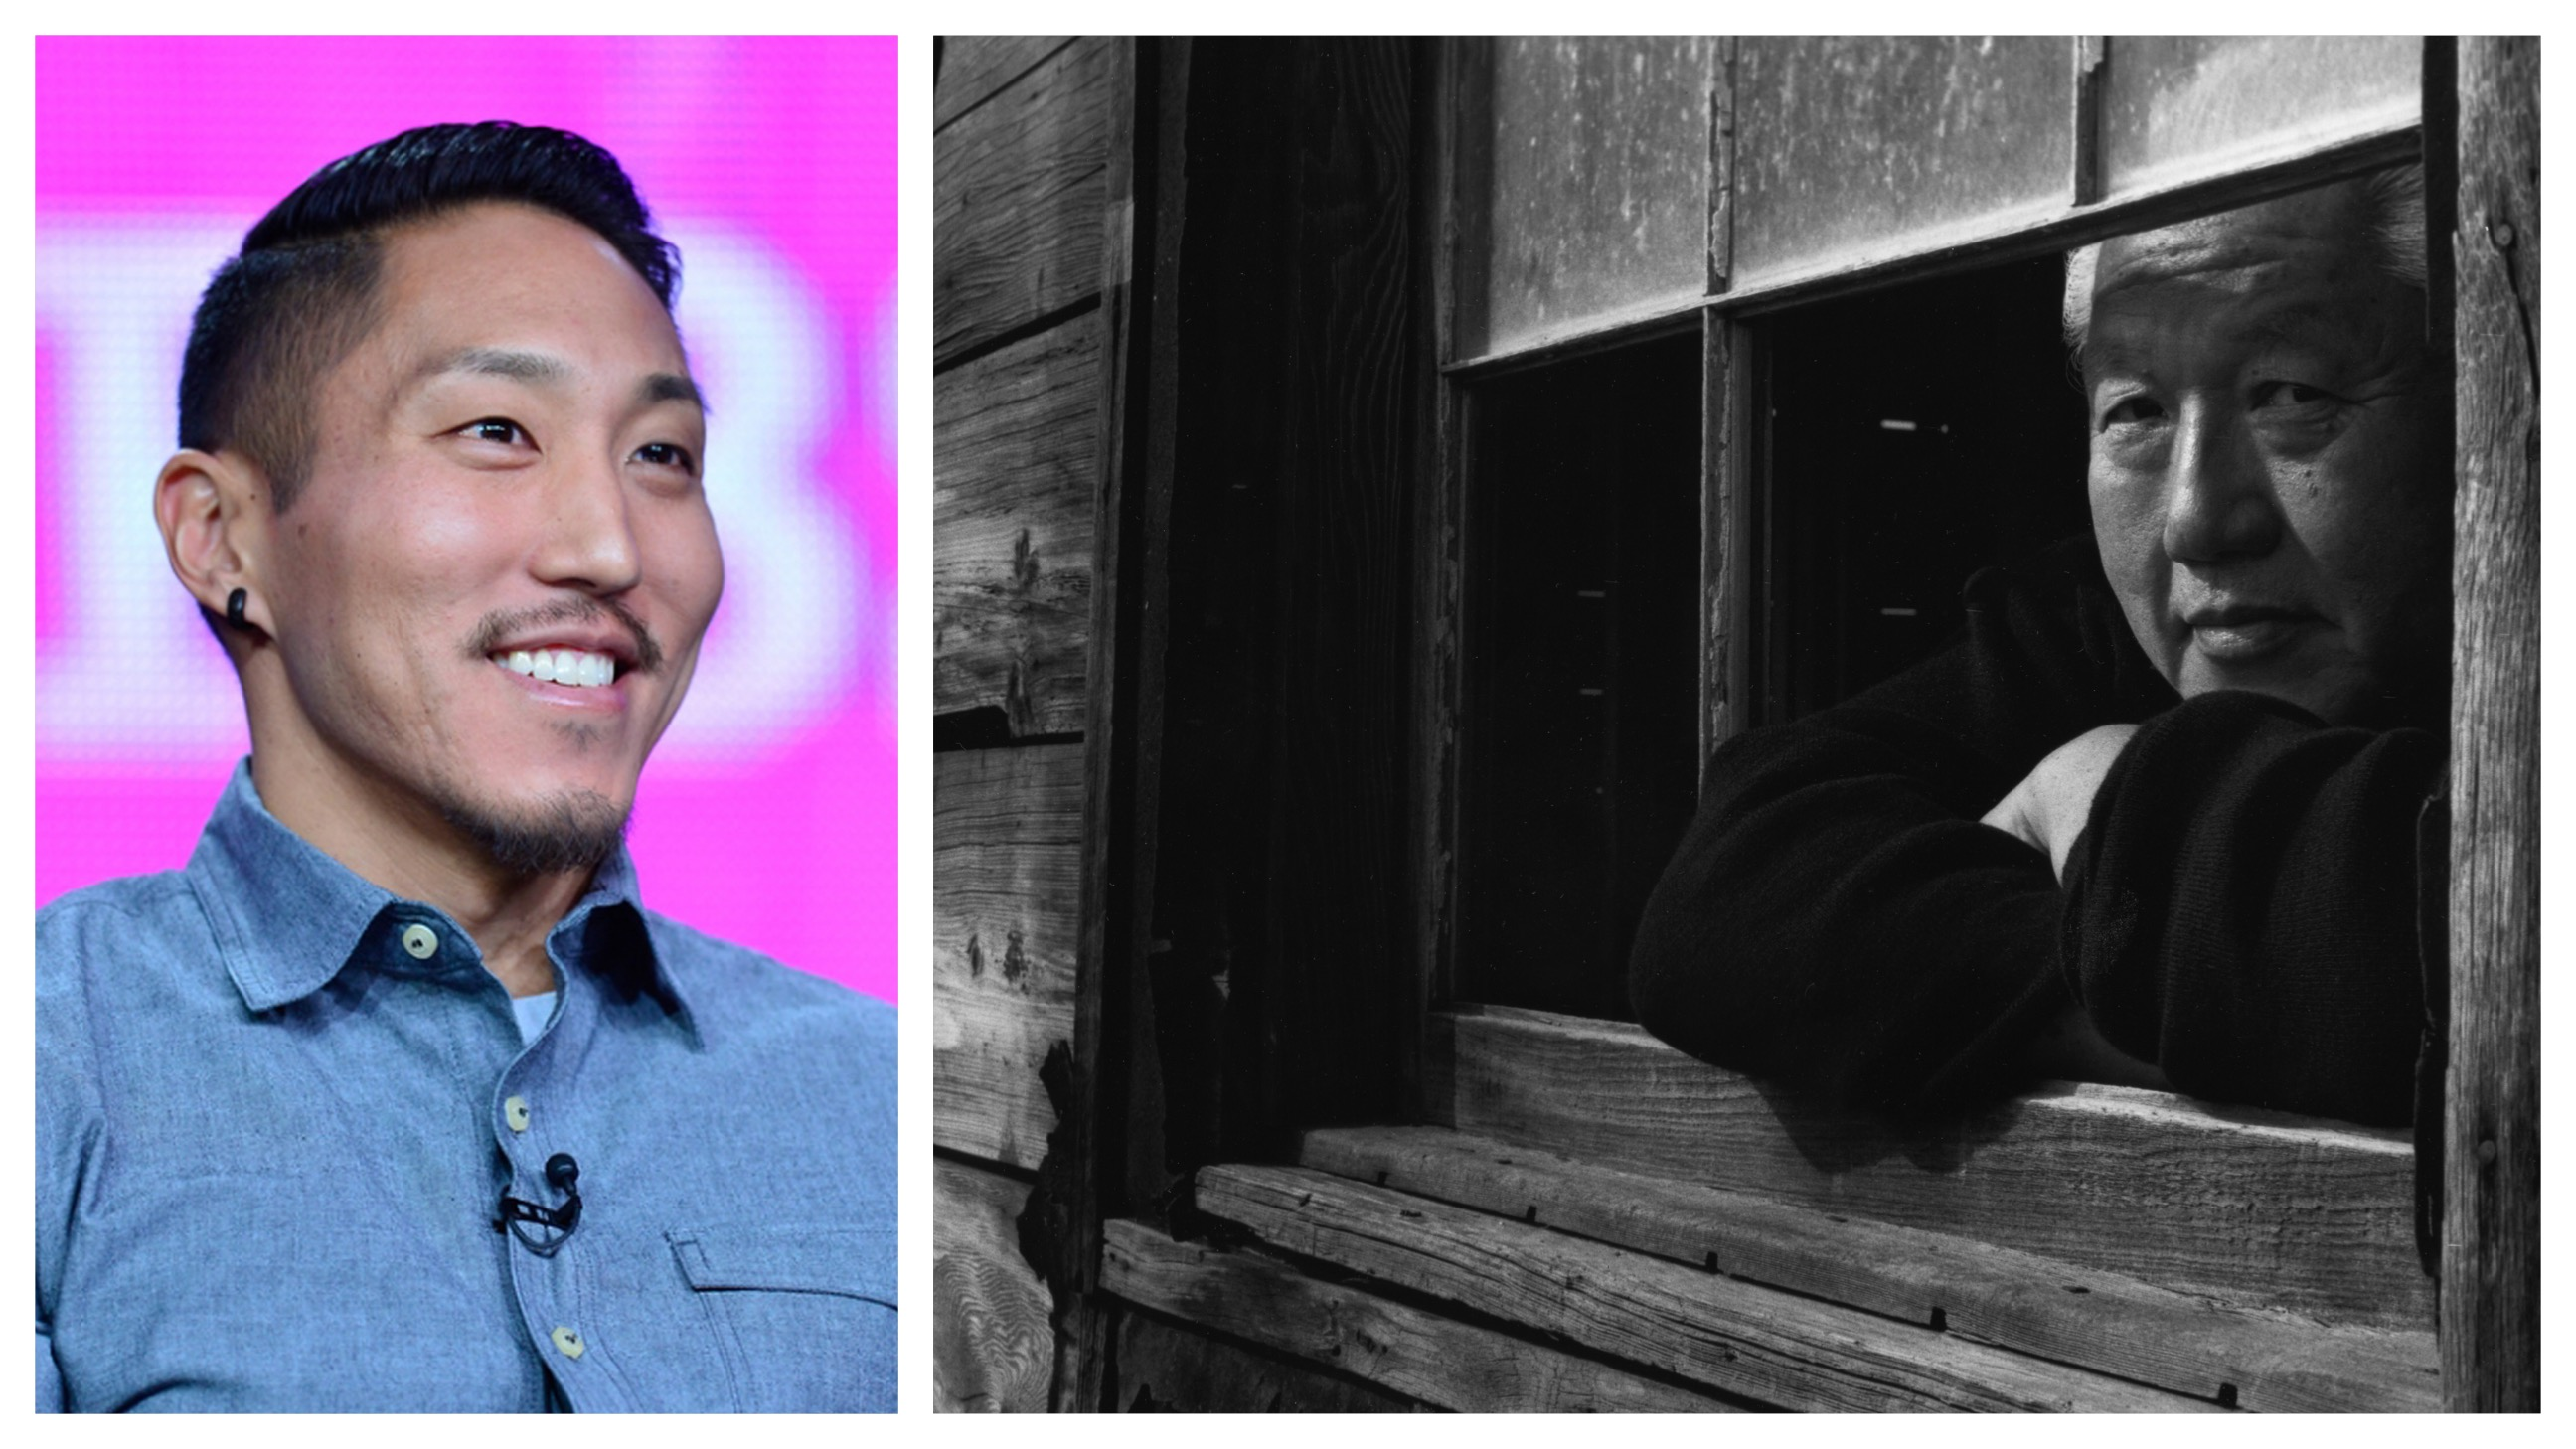 A Japanese American man smiles on the left; on the right is a black and white image of an older Japanese American man looking through a window.